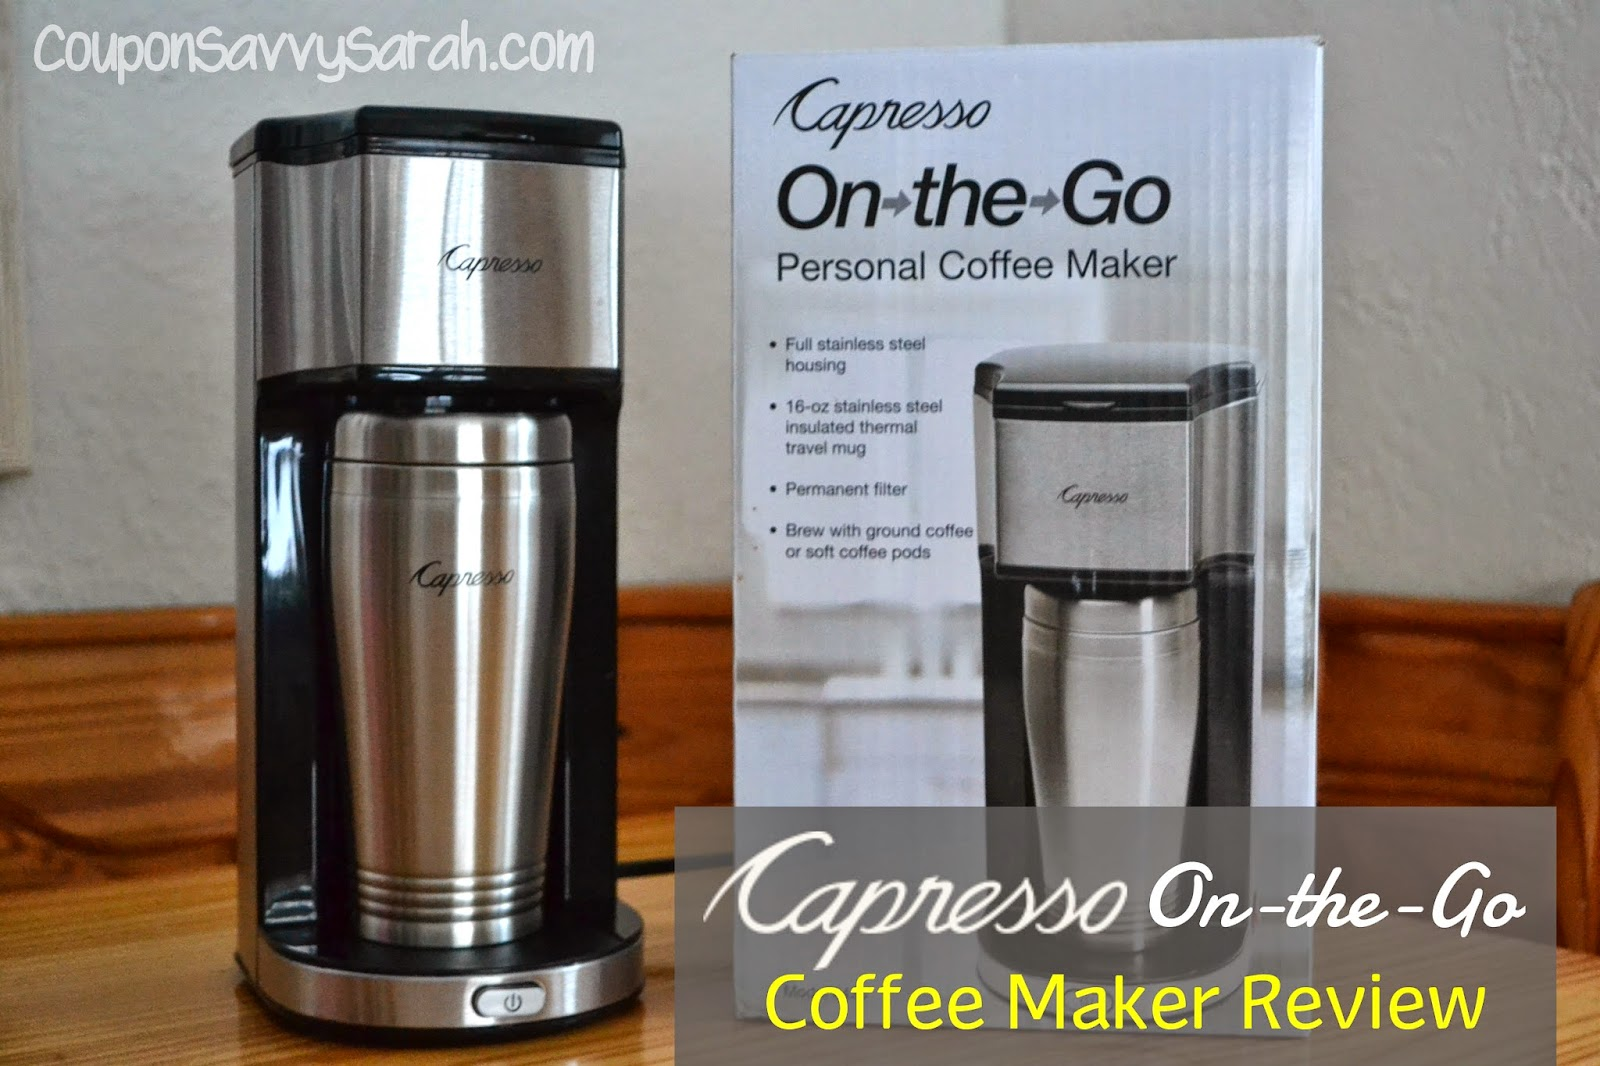 Coffee Maker On The Go : Coupon Savvy Sarah: CAPRESSO On-the-Go Personal Coffee Maker Review #HGG14